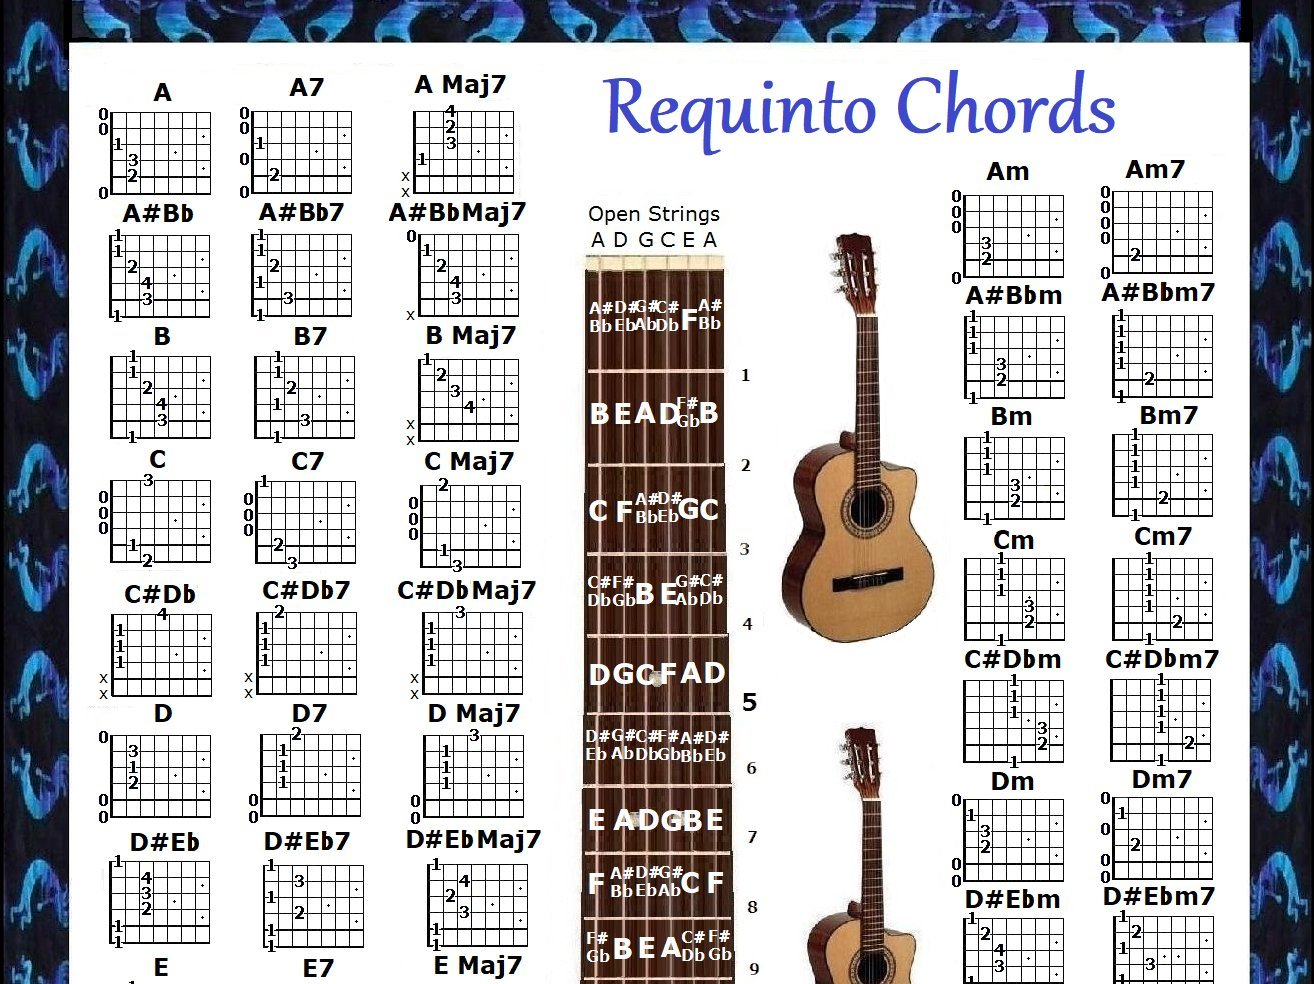 Amazon Requinto Chords 5 Position Logo Poster Musical